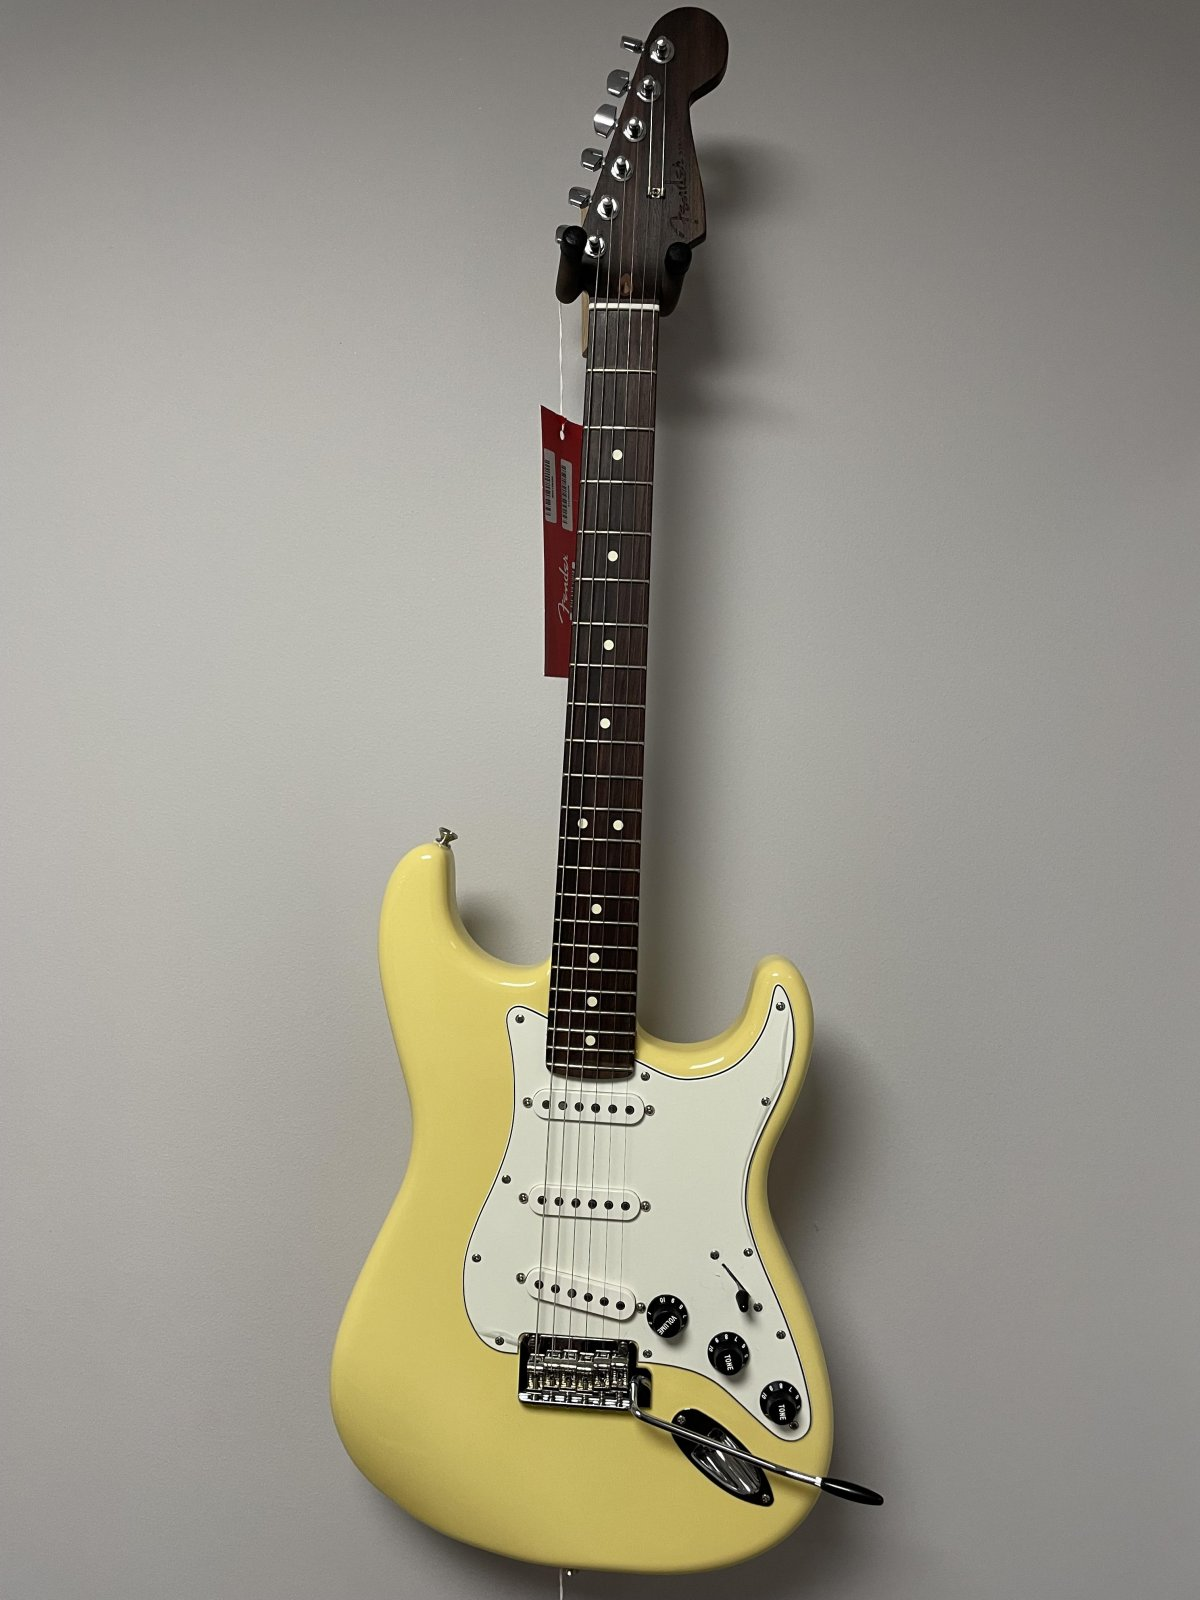 Fender Hilton Music Custom, American All Rosewood Neck, Player Strat body and upgraded electronics